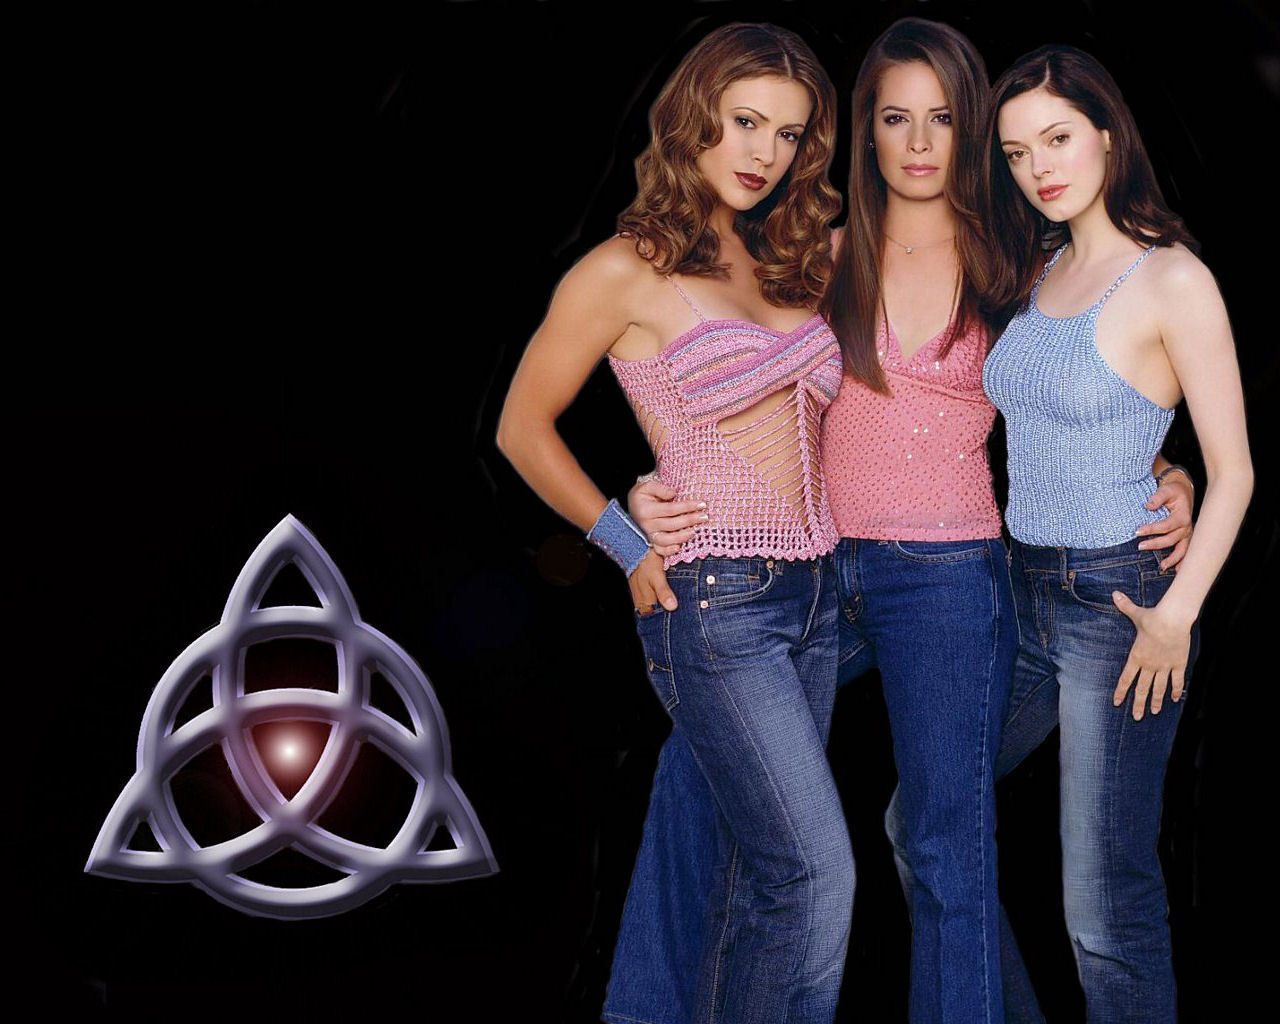 charmed my favorite tv show Watch tv series online ↻ latest episodes ► hawaii five-0 season 9 episode 3 mimiki ke kai, ahuwale ka papa leho top tv shows 1 - game of thrones 2 - the big bang theory.